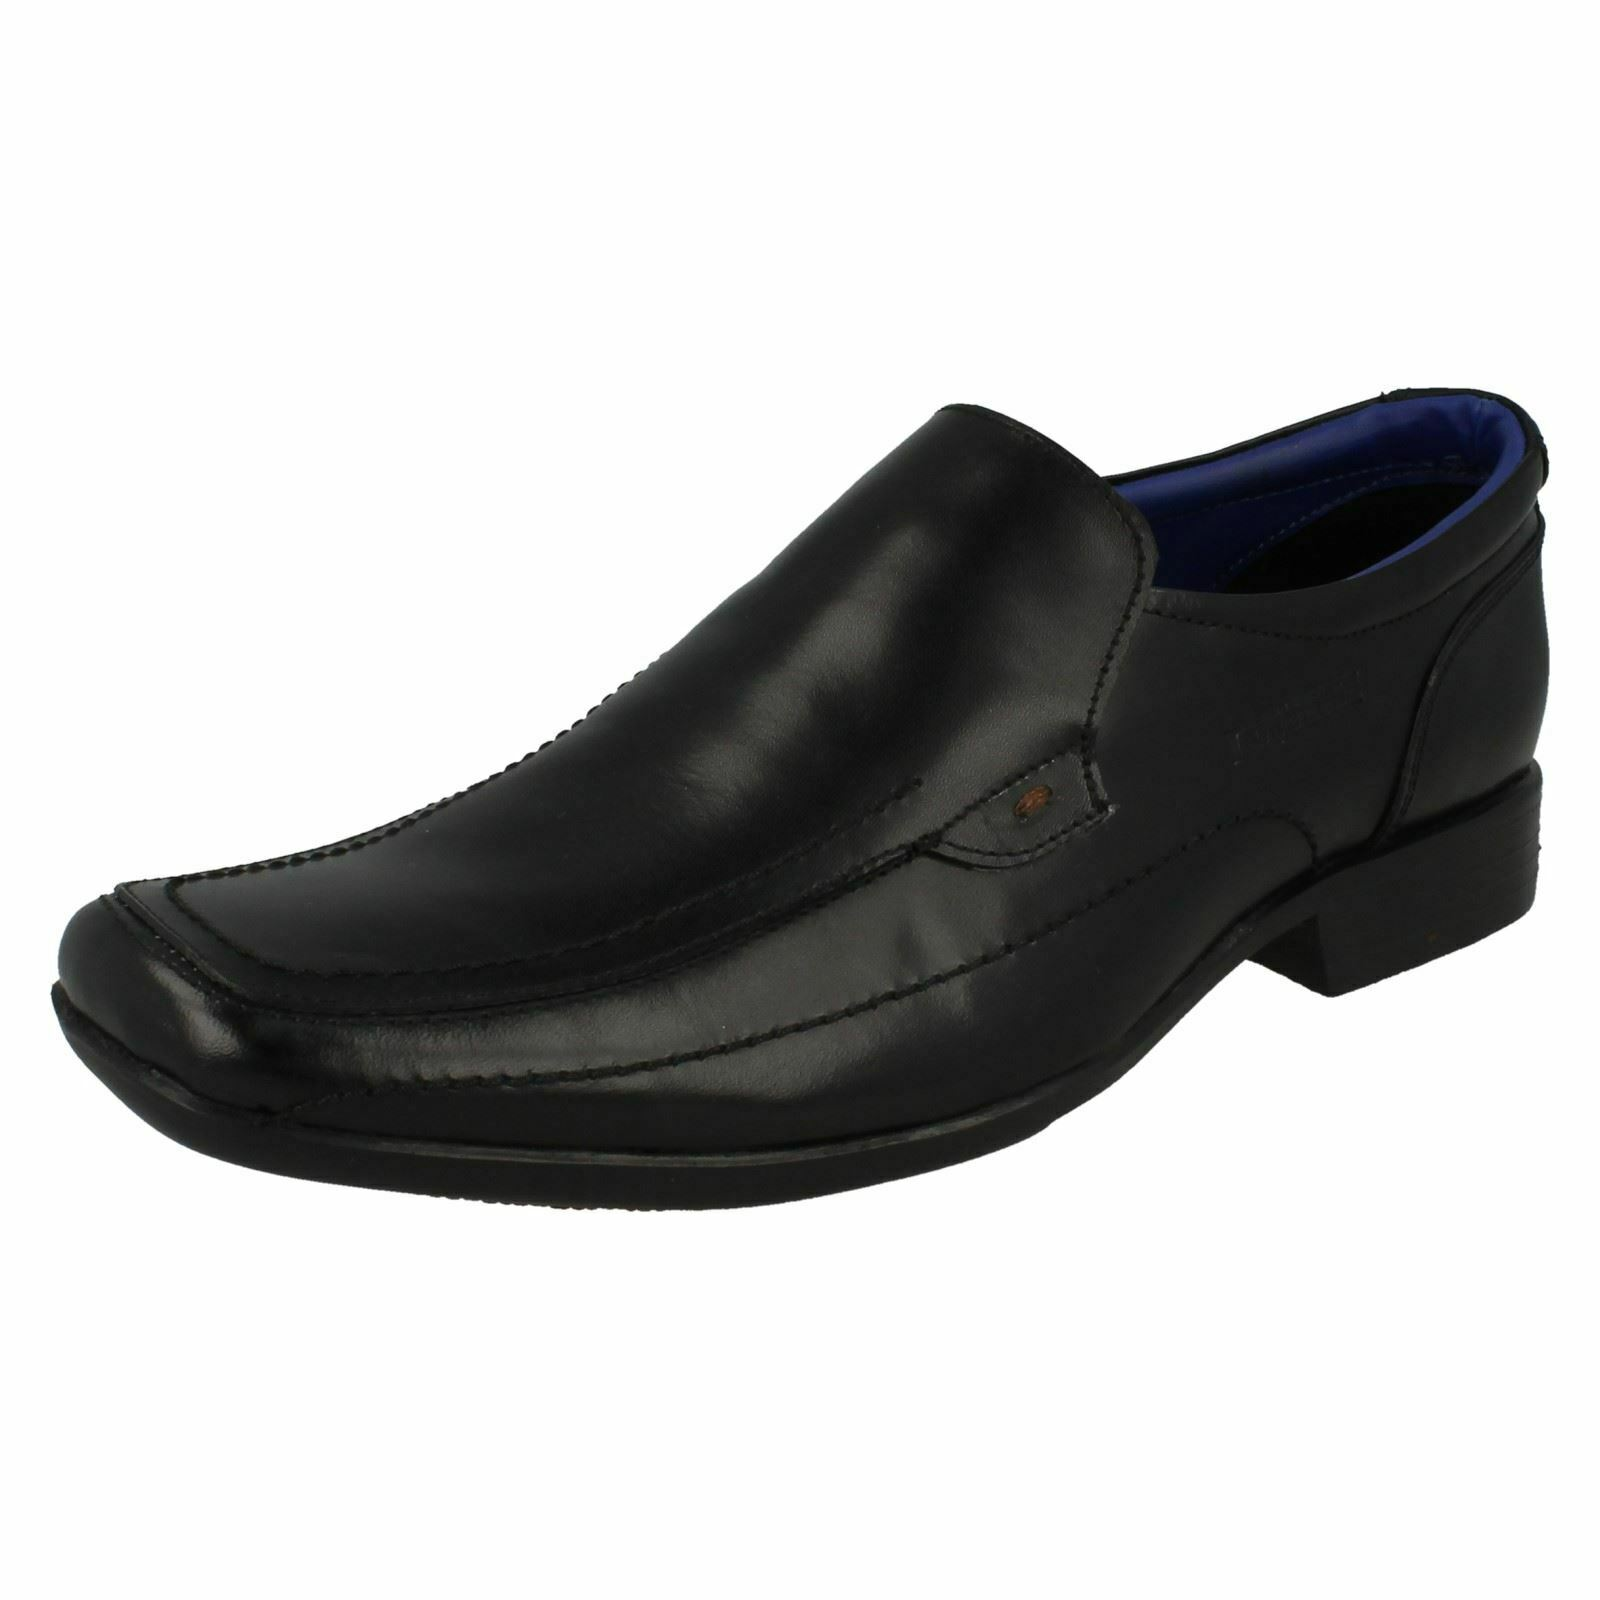 MENS LAMBRETTA SLIP ON LEATHER BLACK FORMAL WEDDING OFFICE WORK SHOES 20287